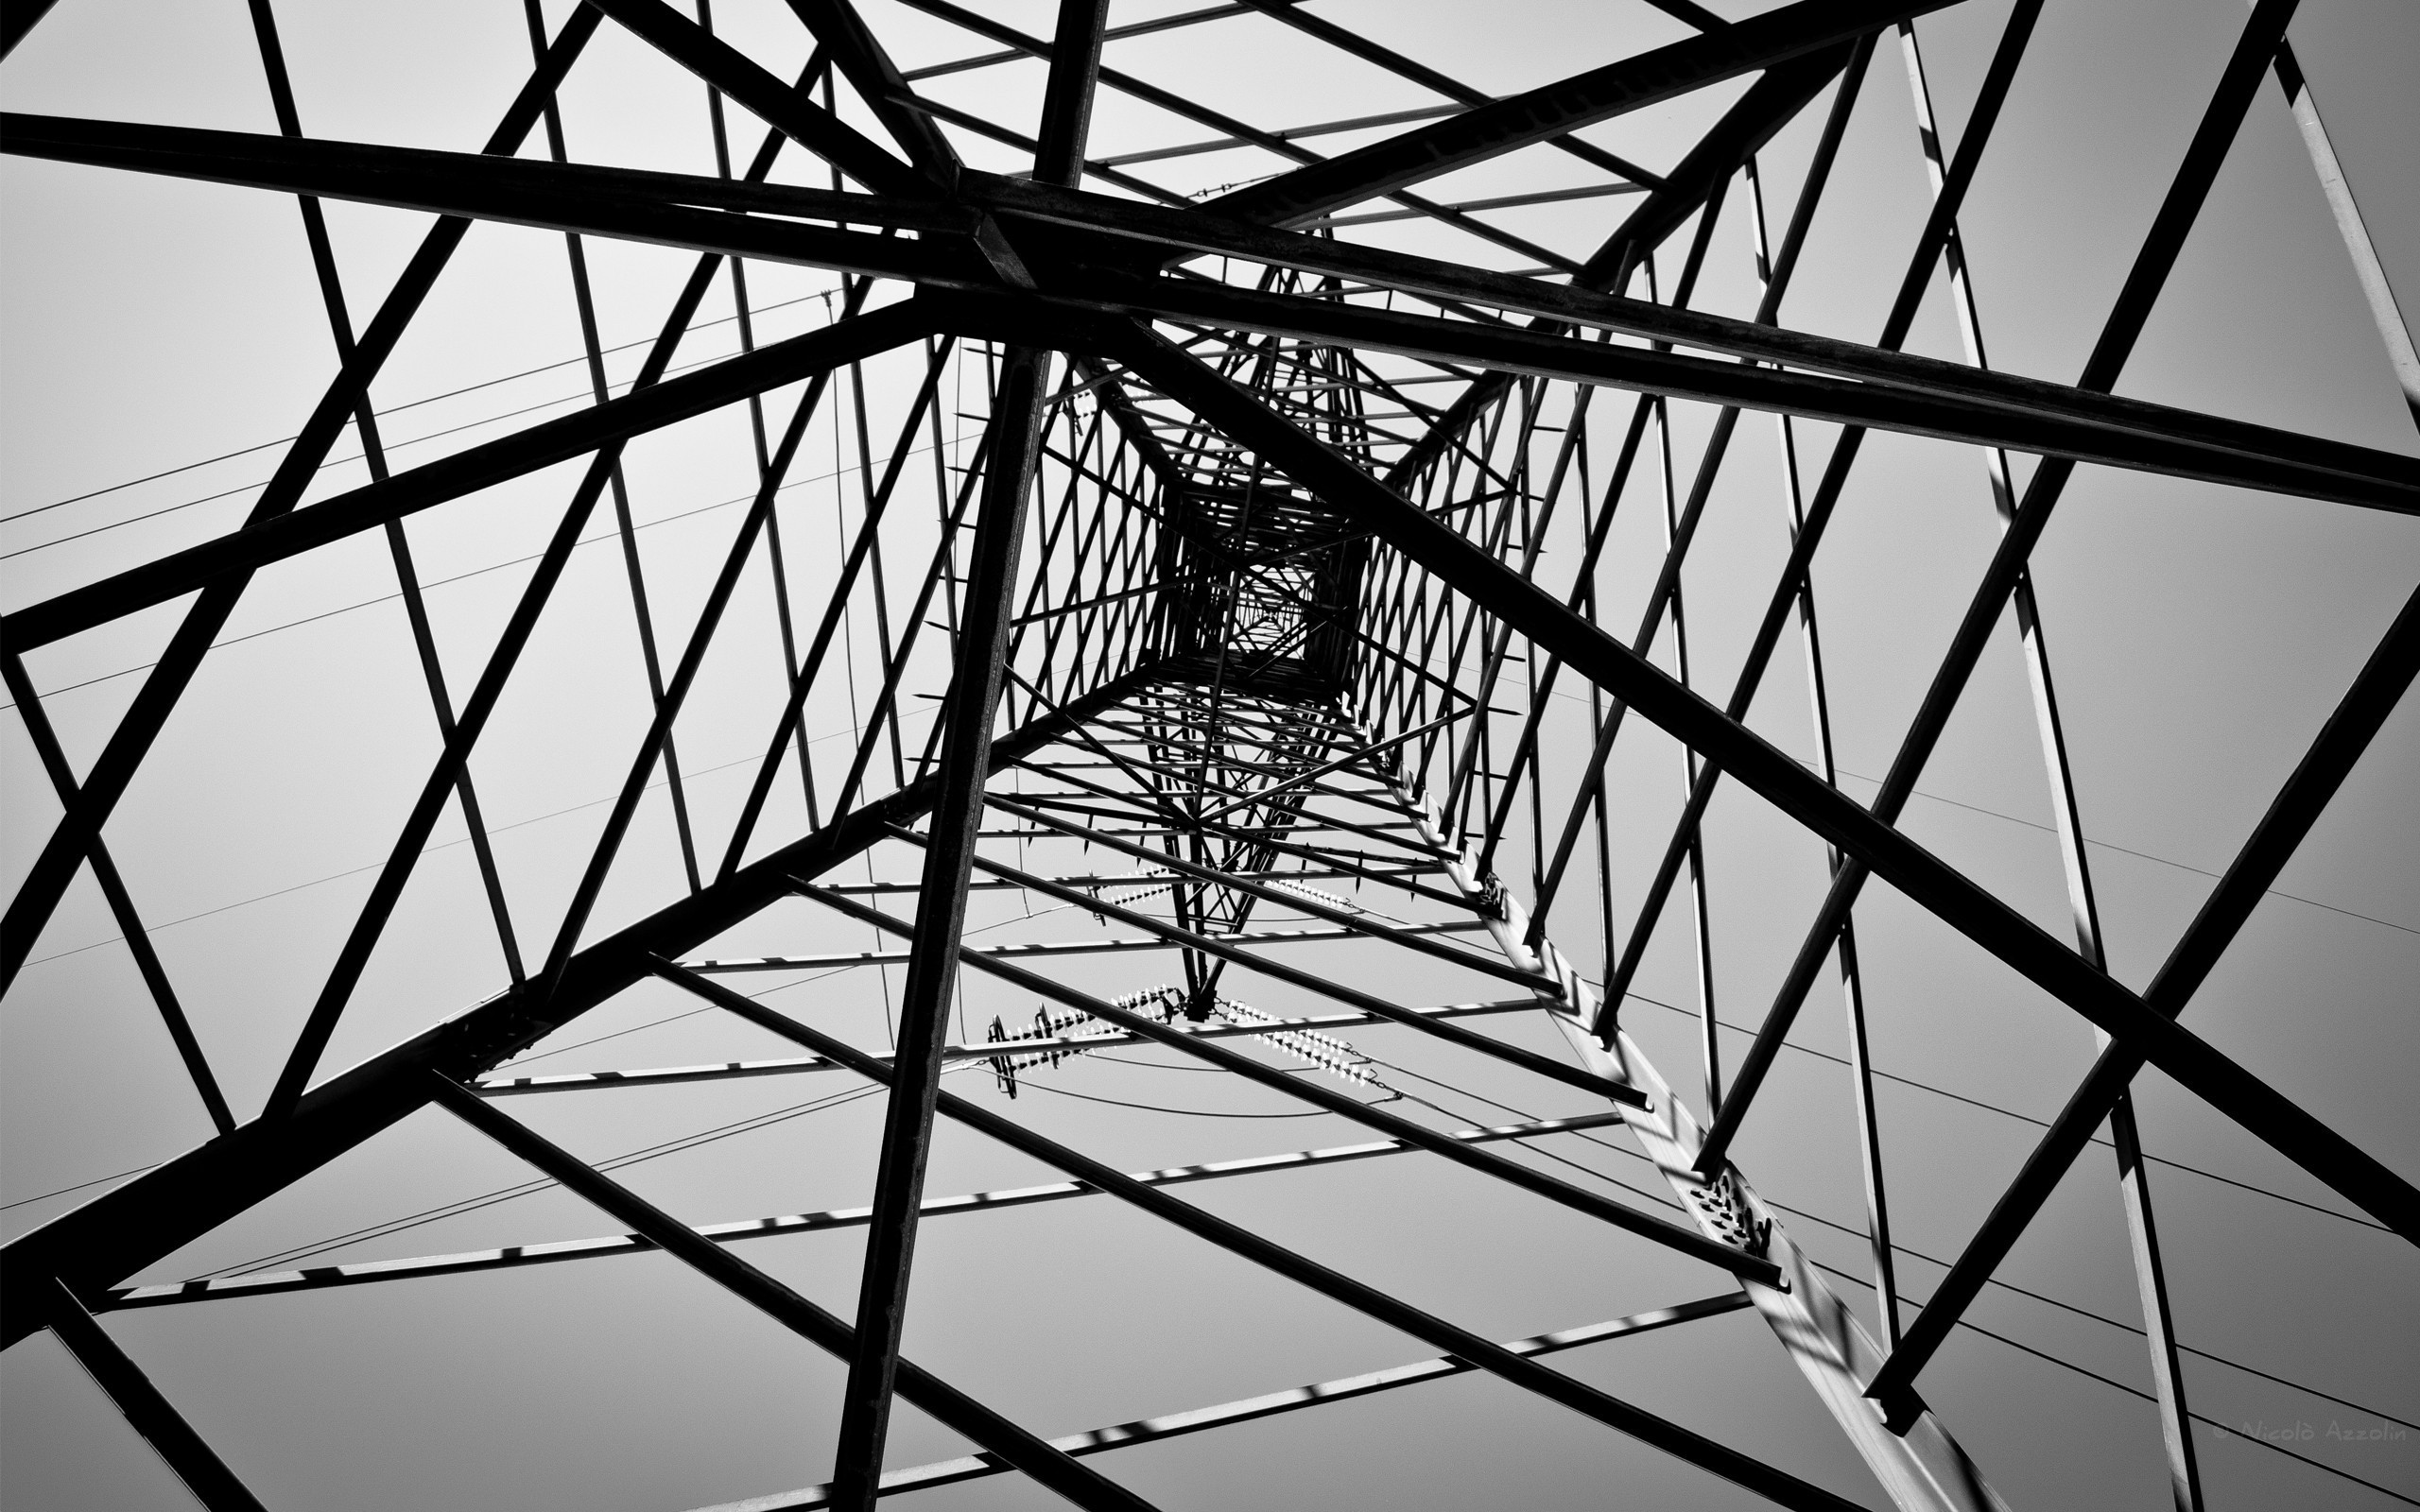 2560x1600 Image: Electricity Pole Perspective wallpapers and stock photos. Â«